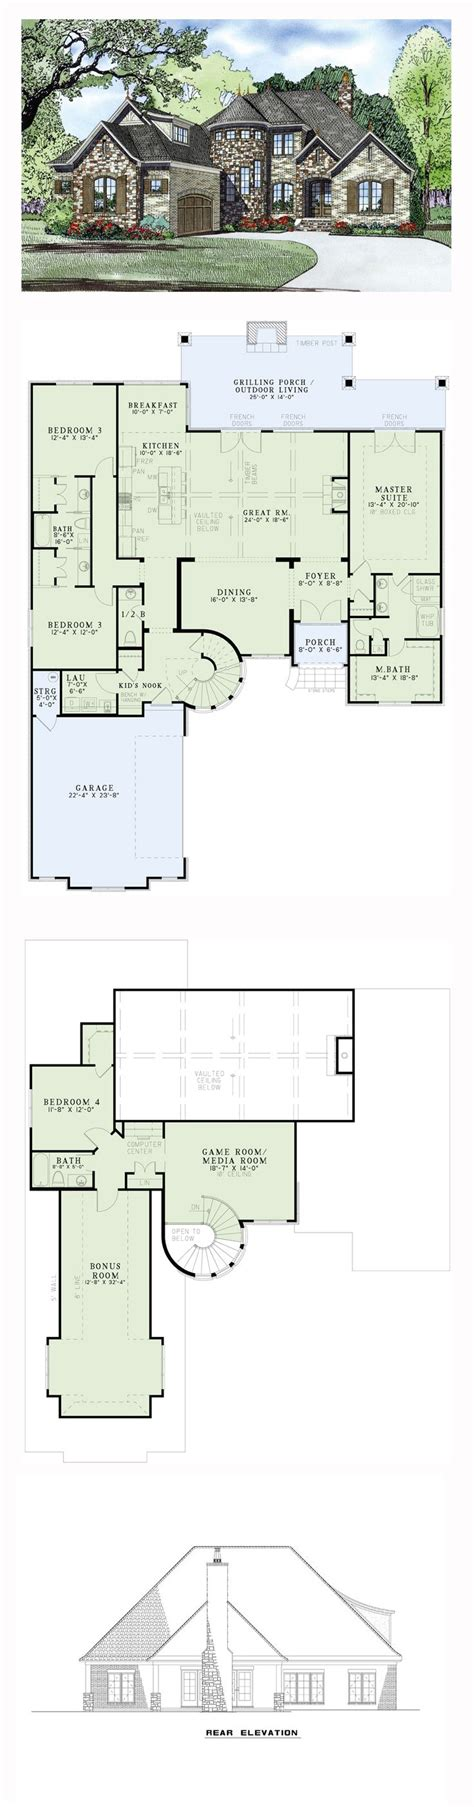 house for plans 2 story 4 bedroom 3 bath house plansjpg 881768 house plans luxamcc